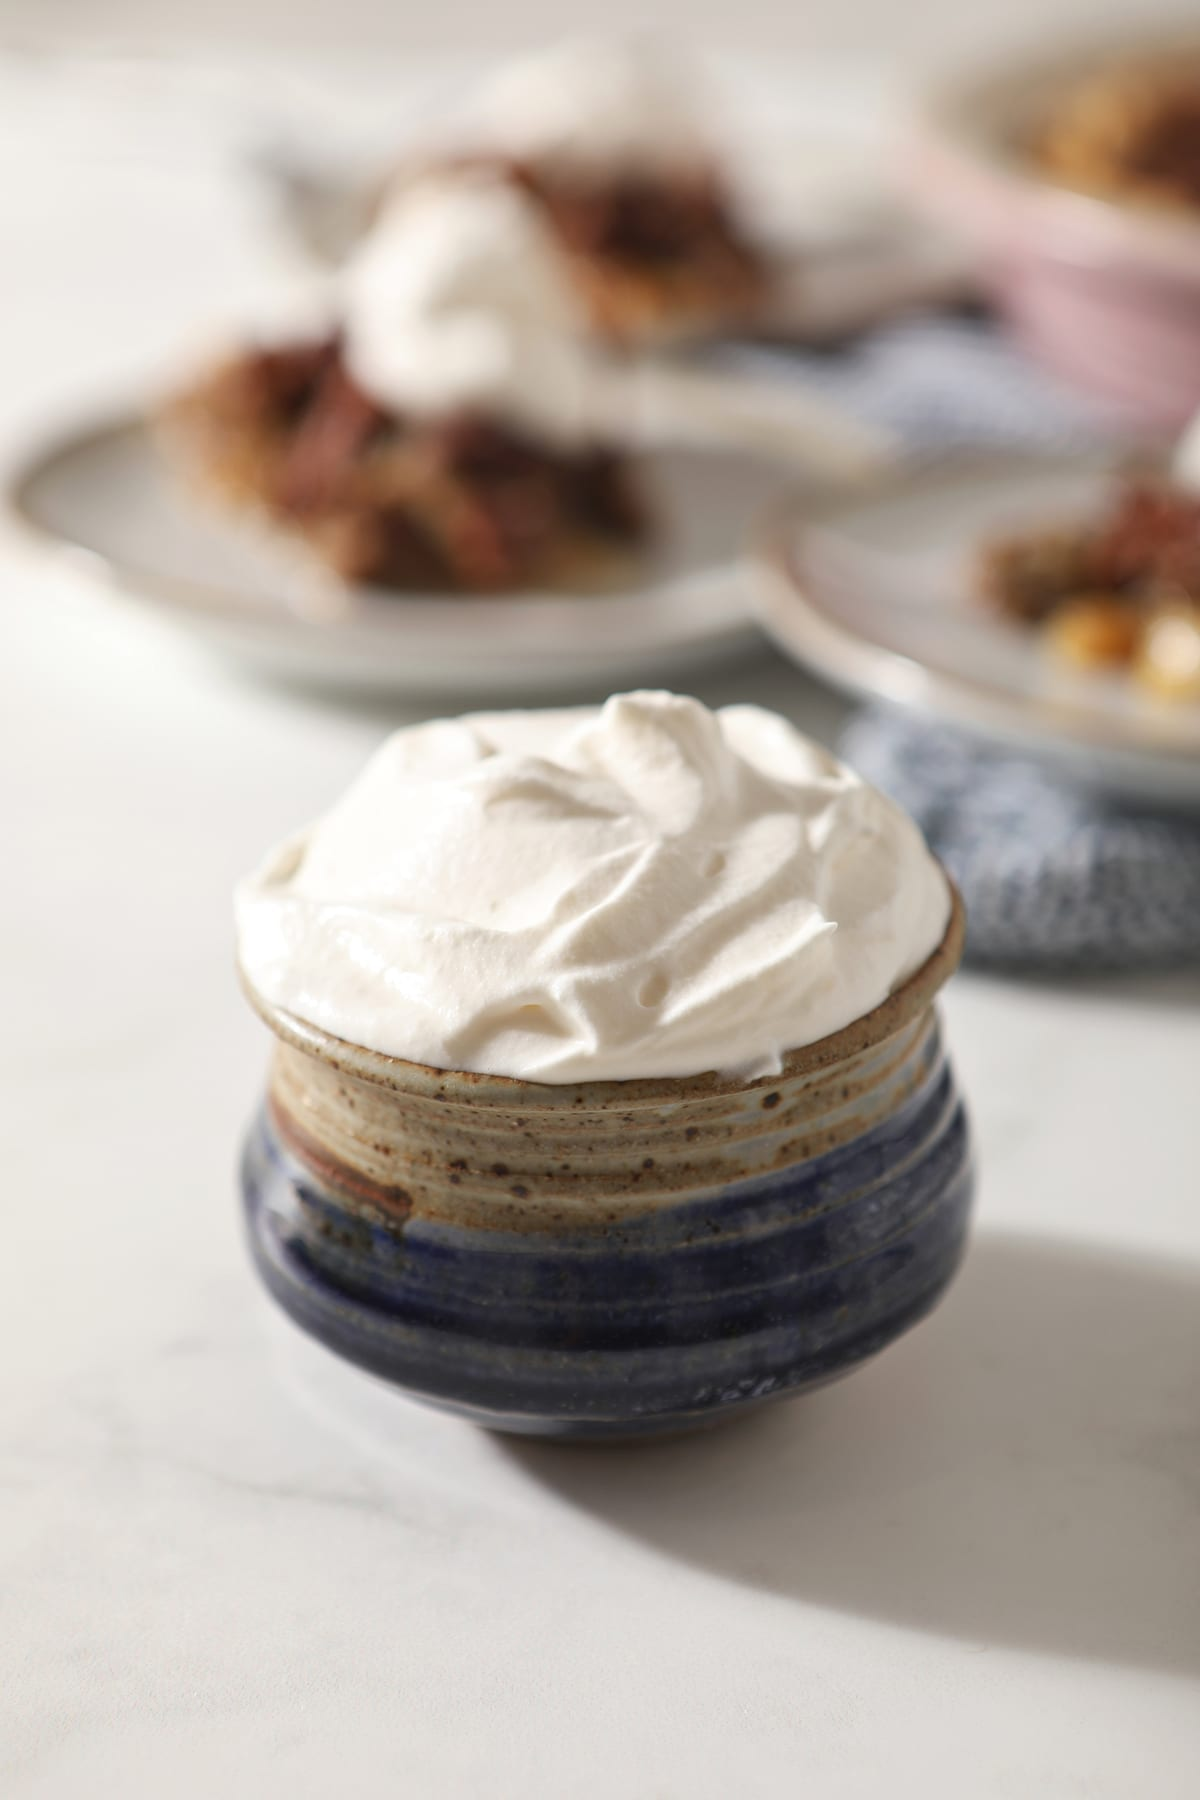 Close up of a blue pottery bowl holding a serving of homemade sweetened whipped cream